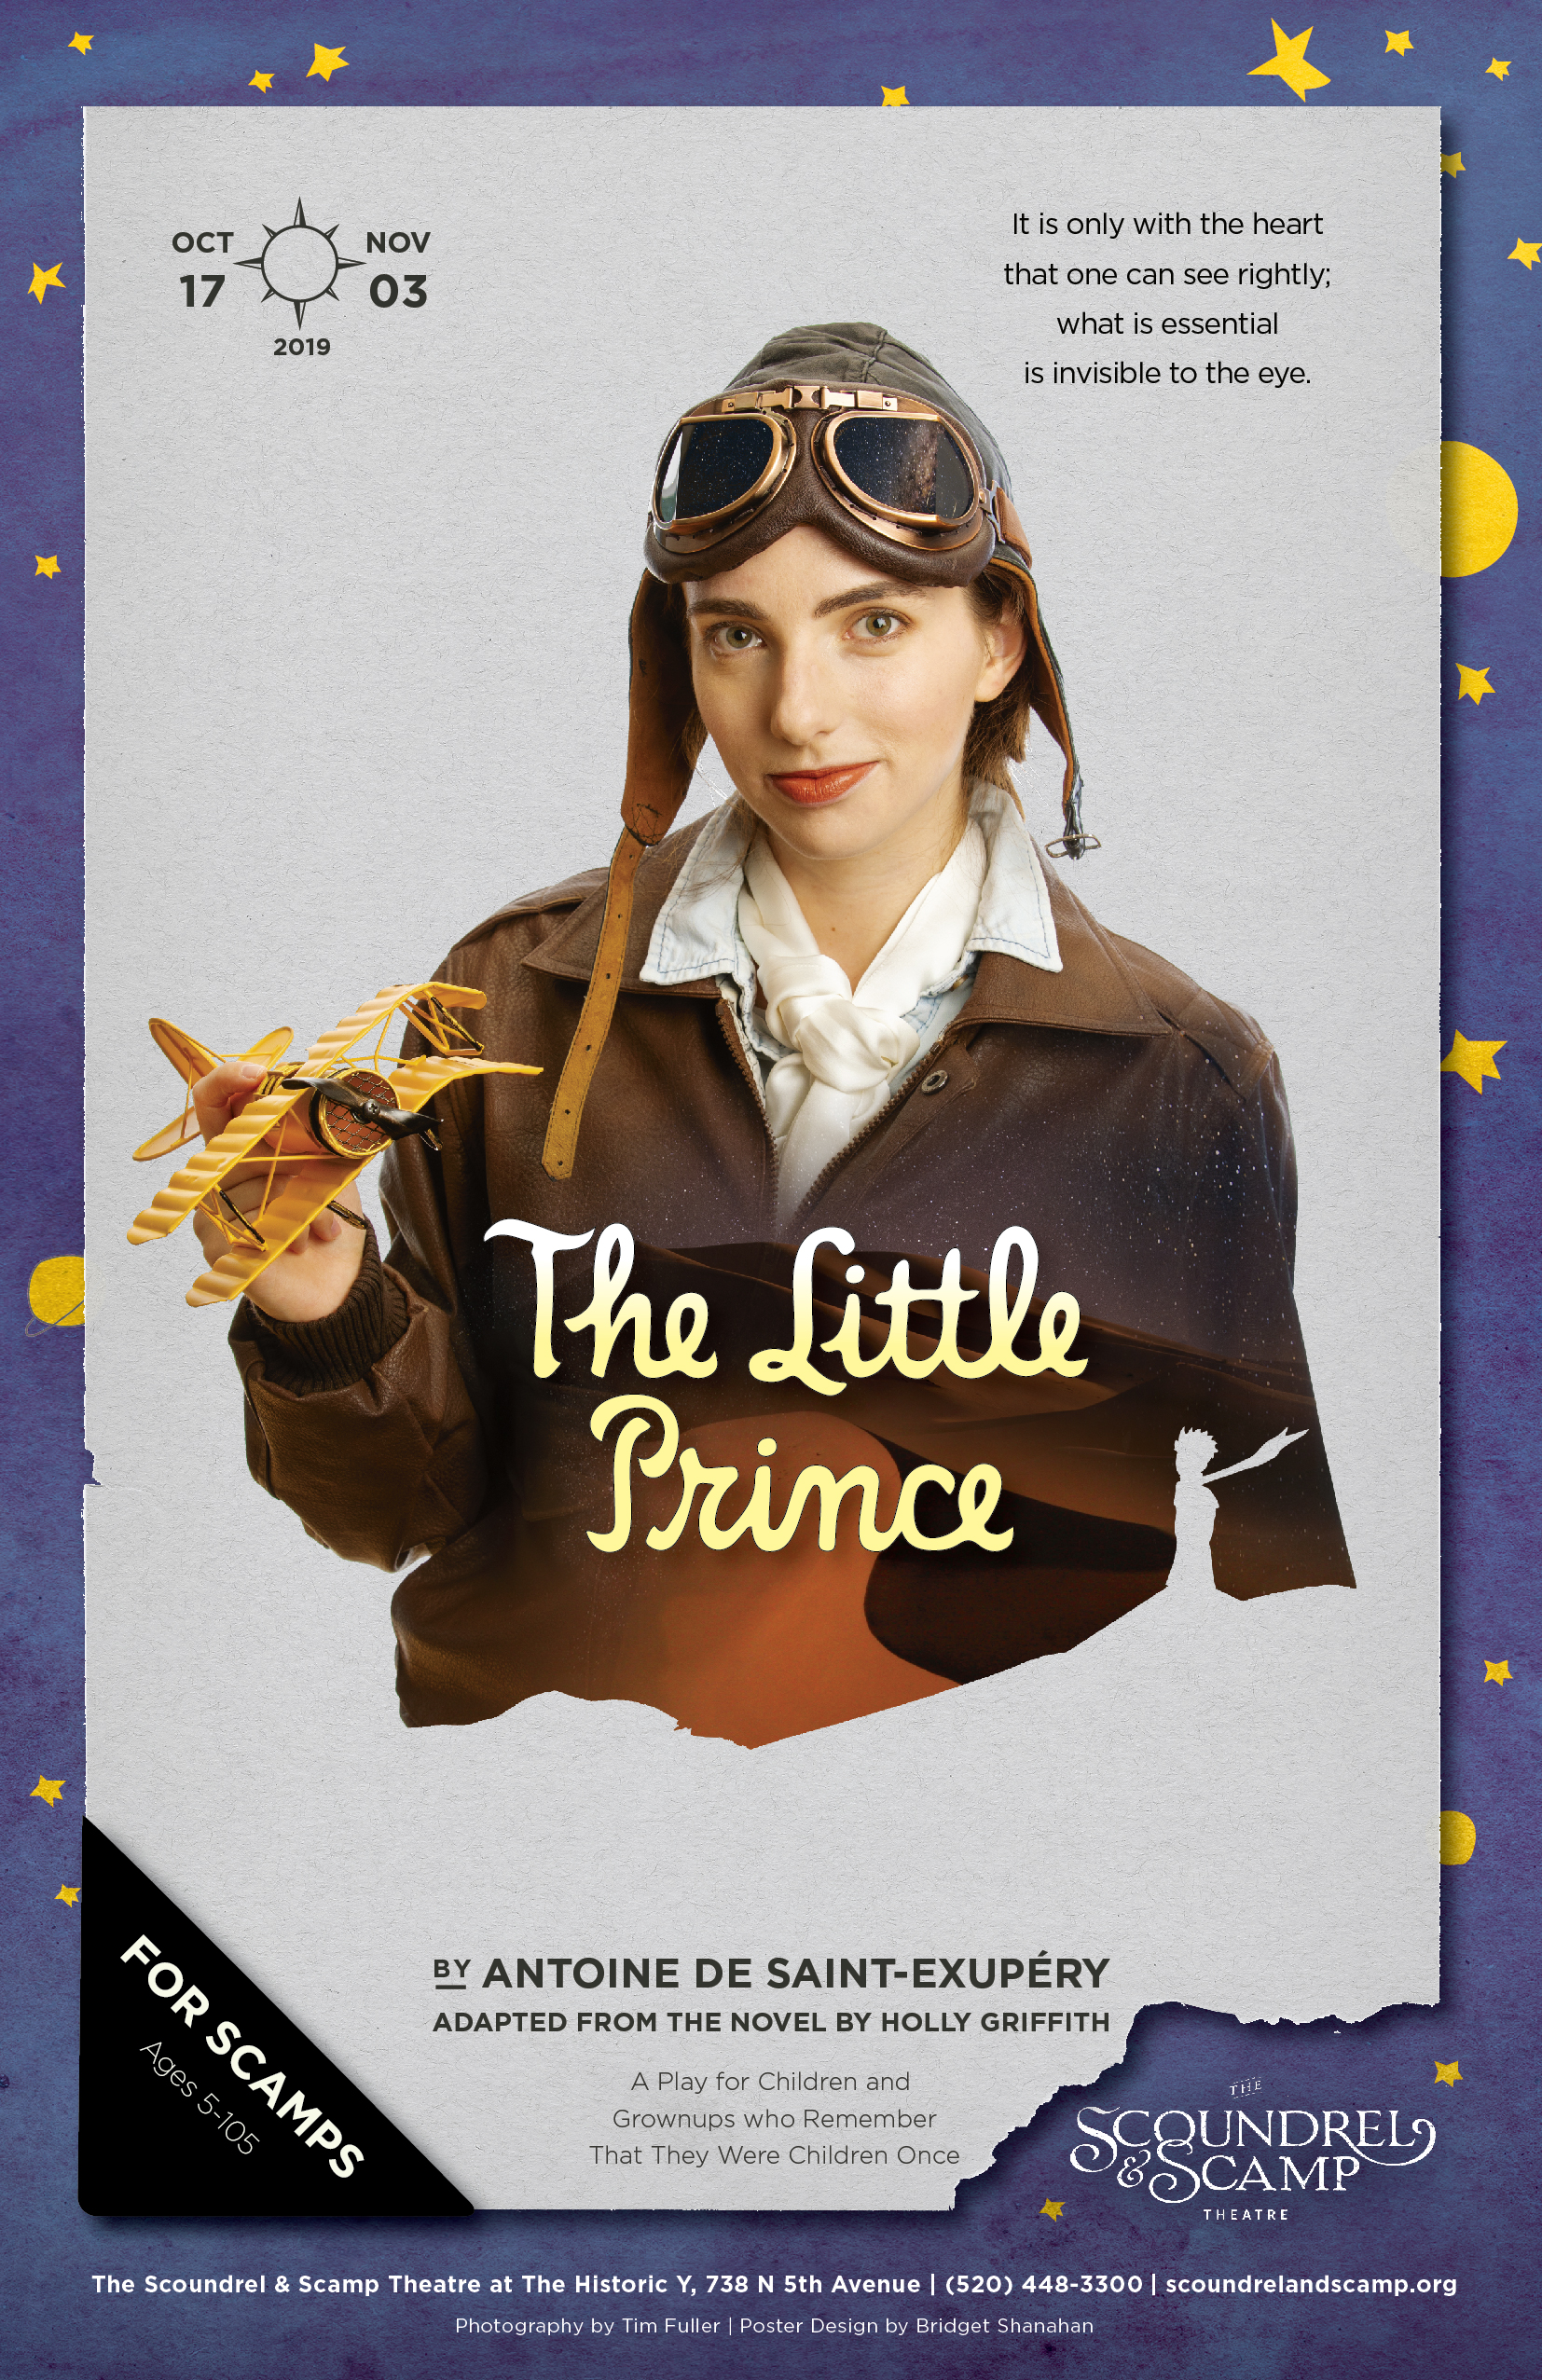 THE LITTLE PRINCE-11x17 web-01.jpg